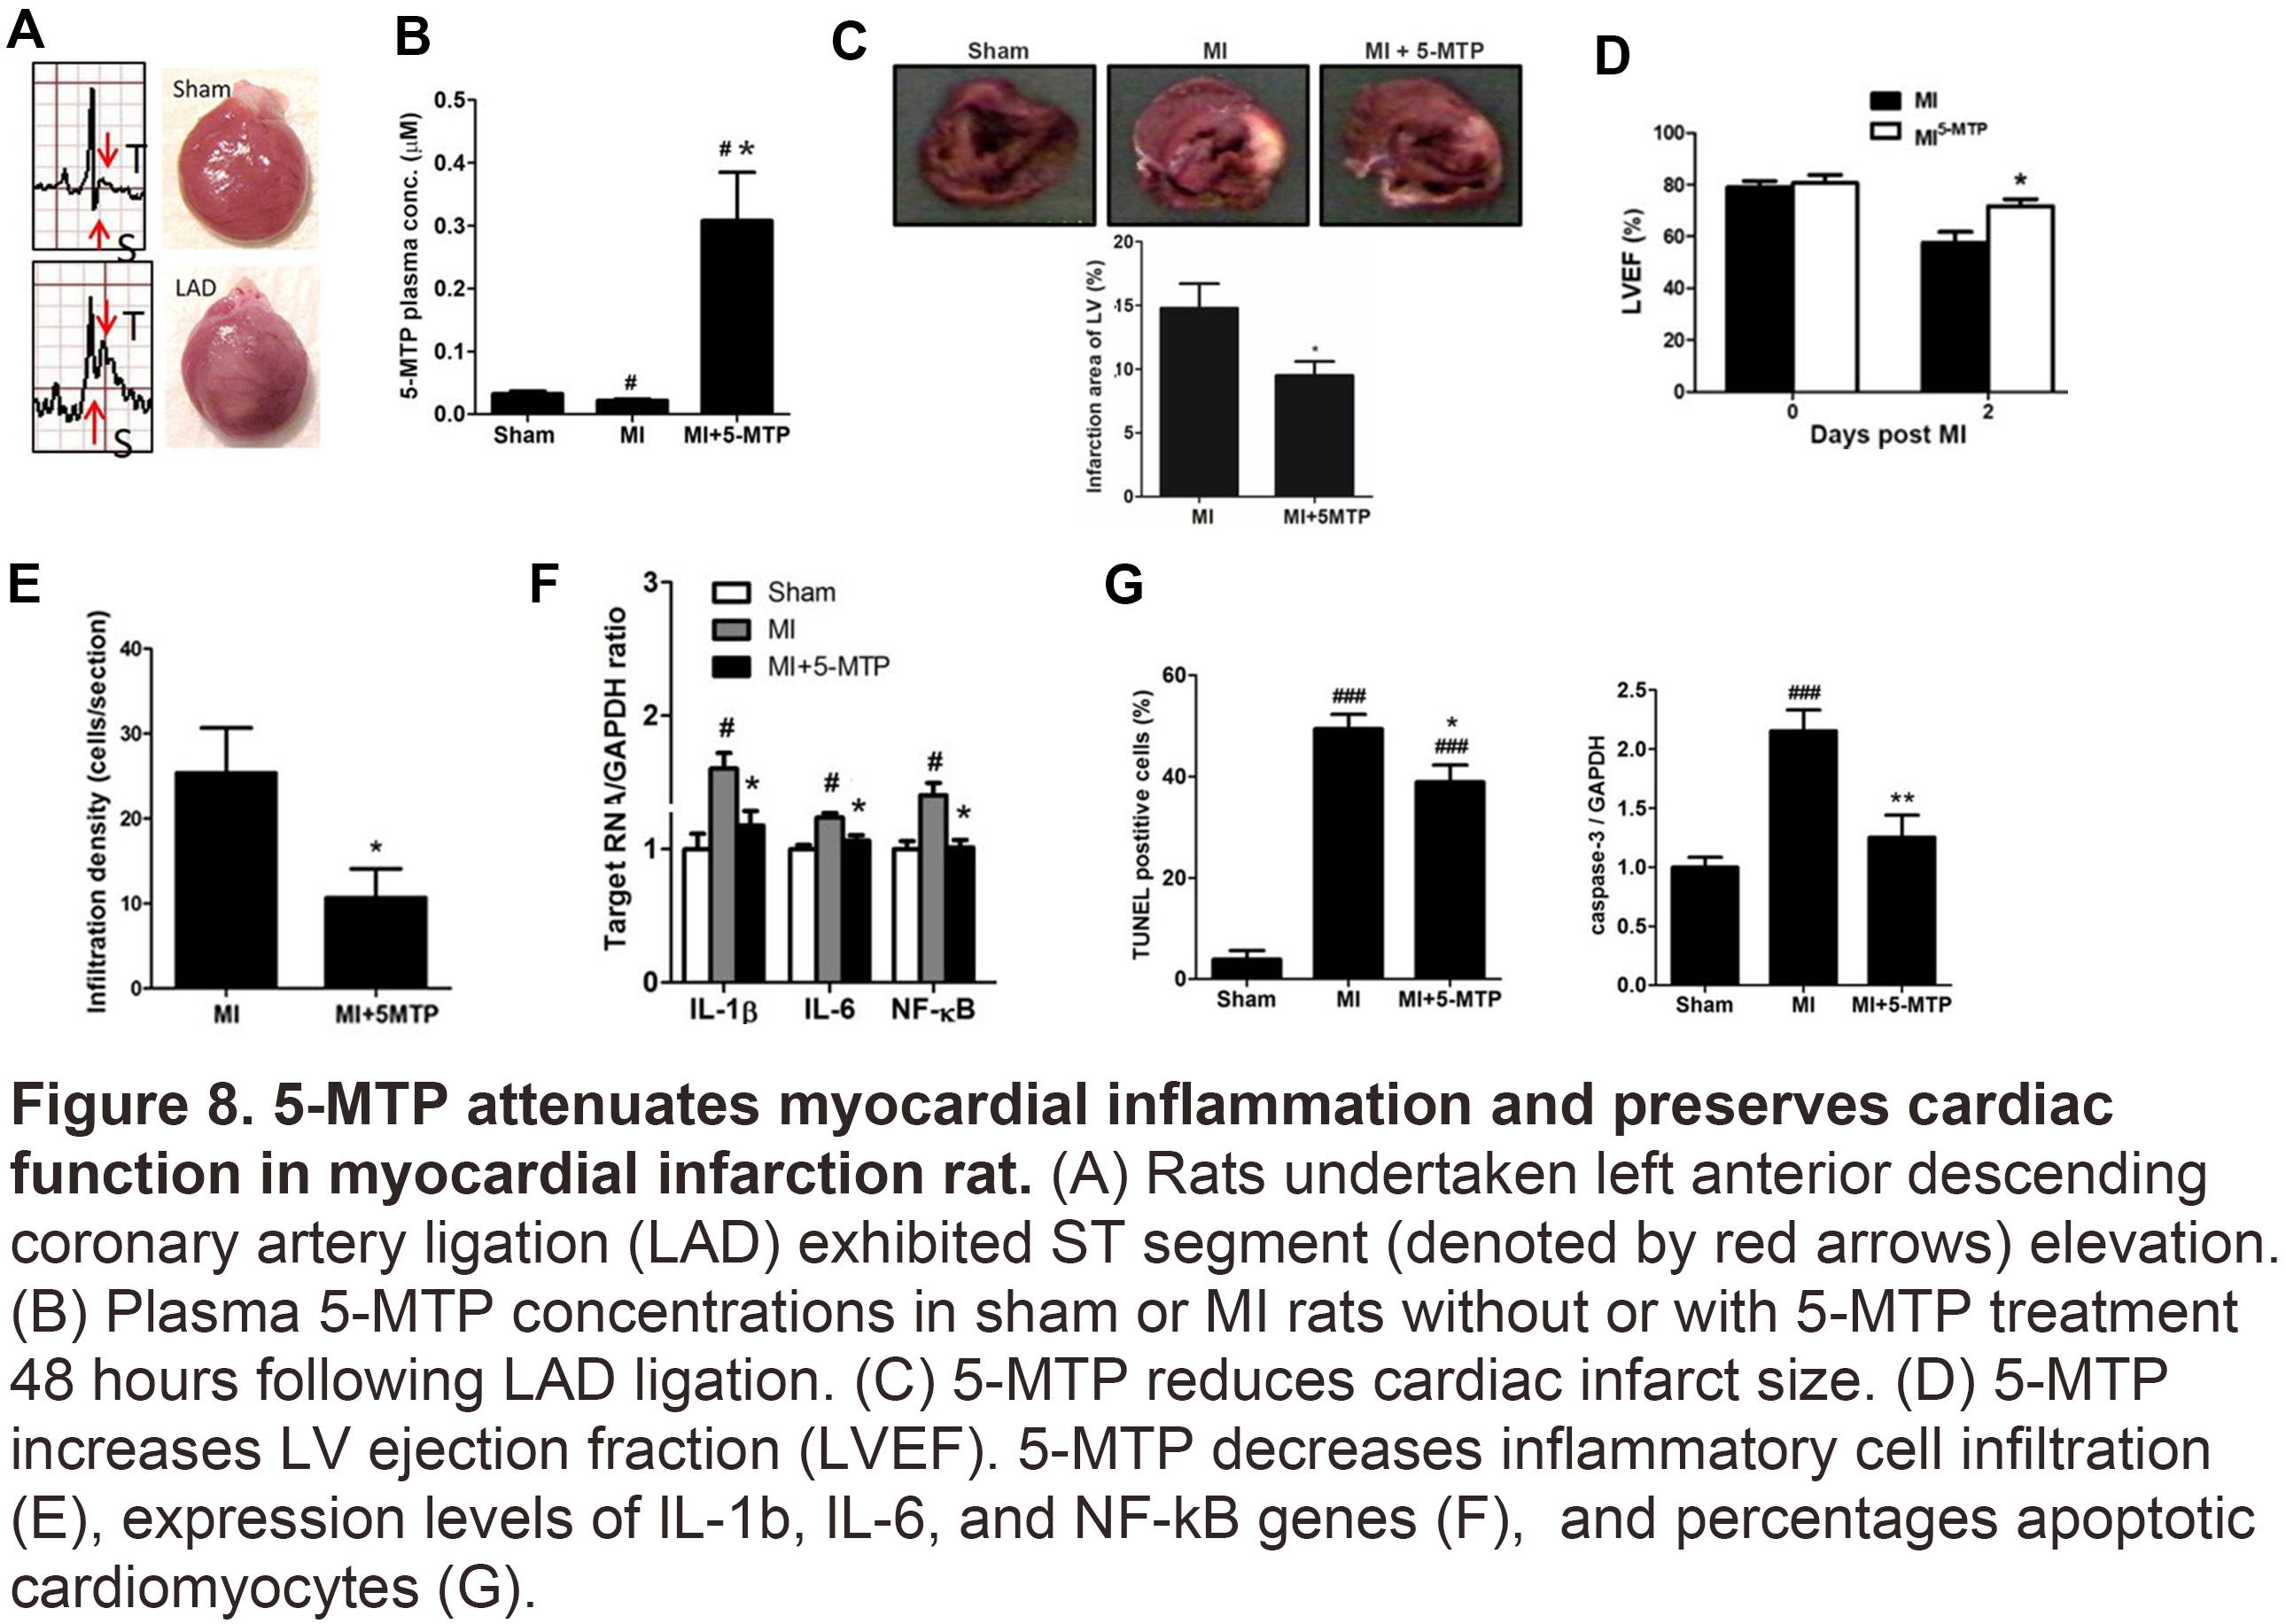 5-MTP attenuates myocardial inflammation and preserves cardiac function in myocardial infarction